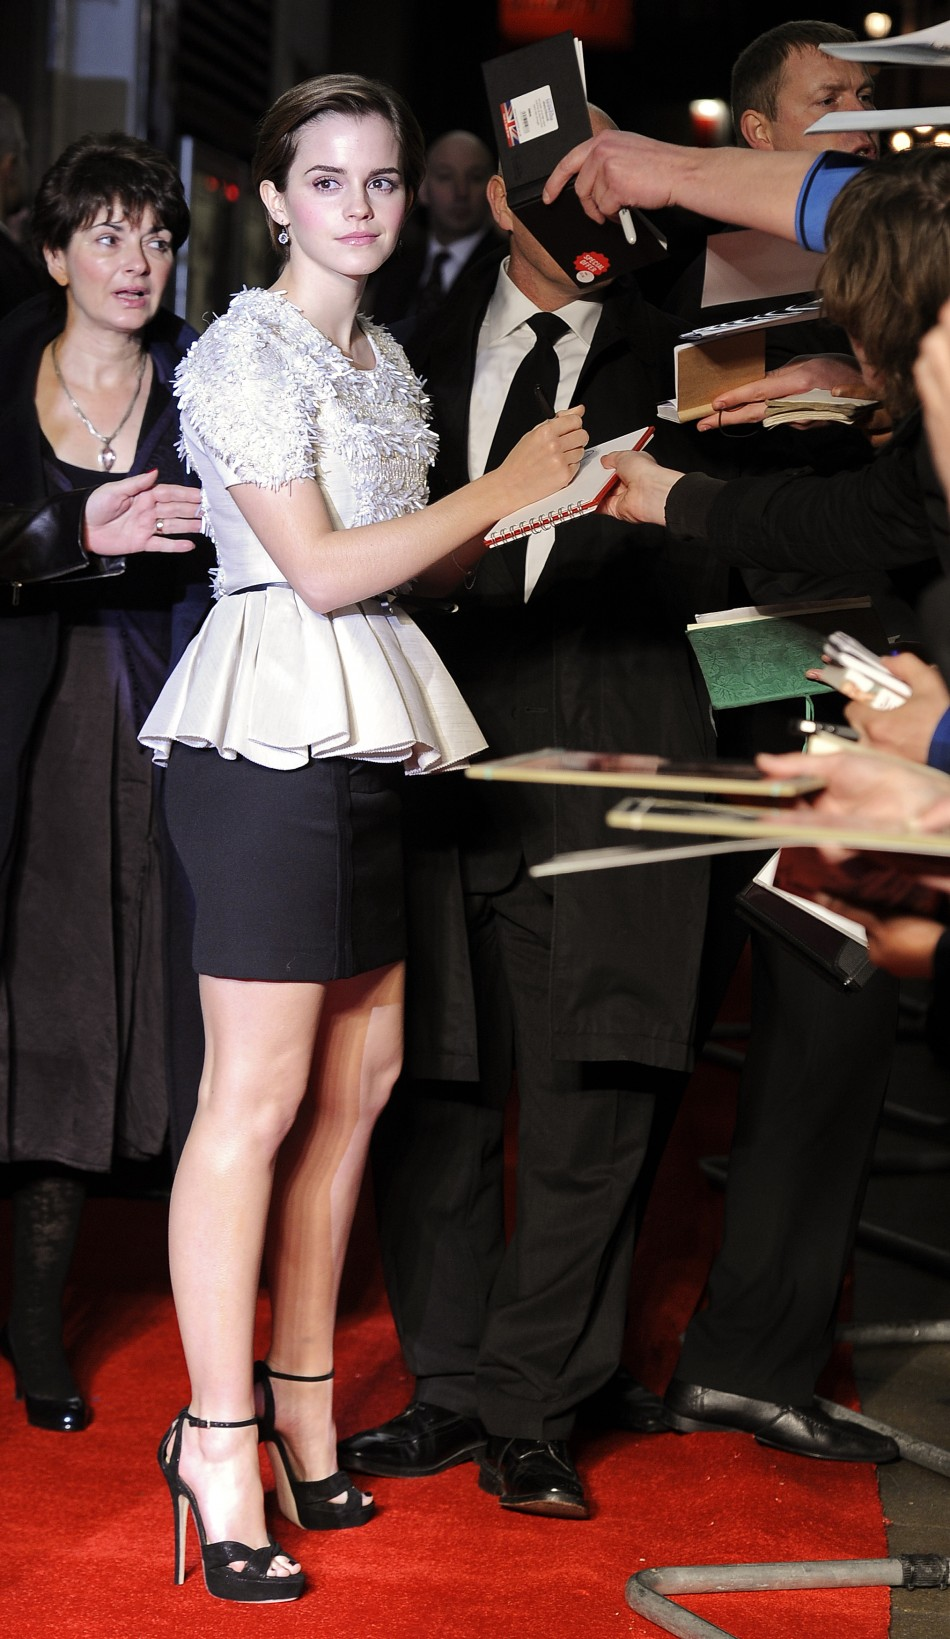 Emma Watson signs autographs for fans during the European premiere of quotMy Week With Marilynquot in London